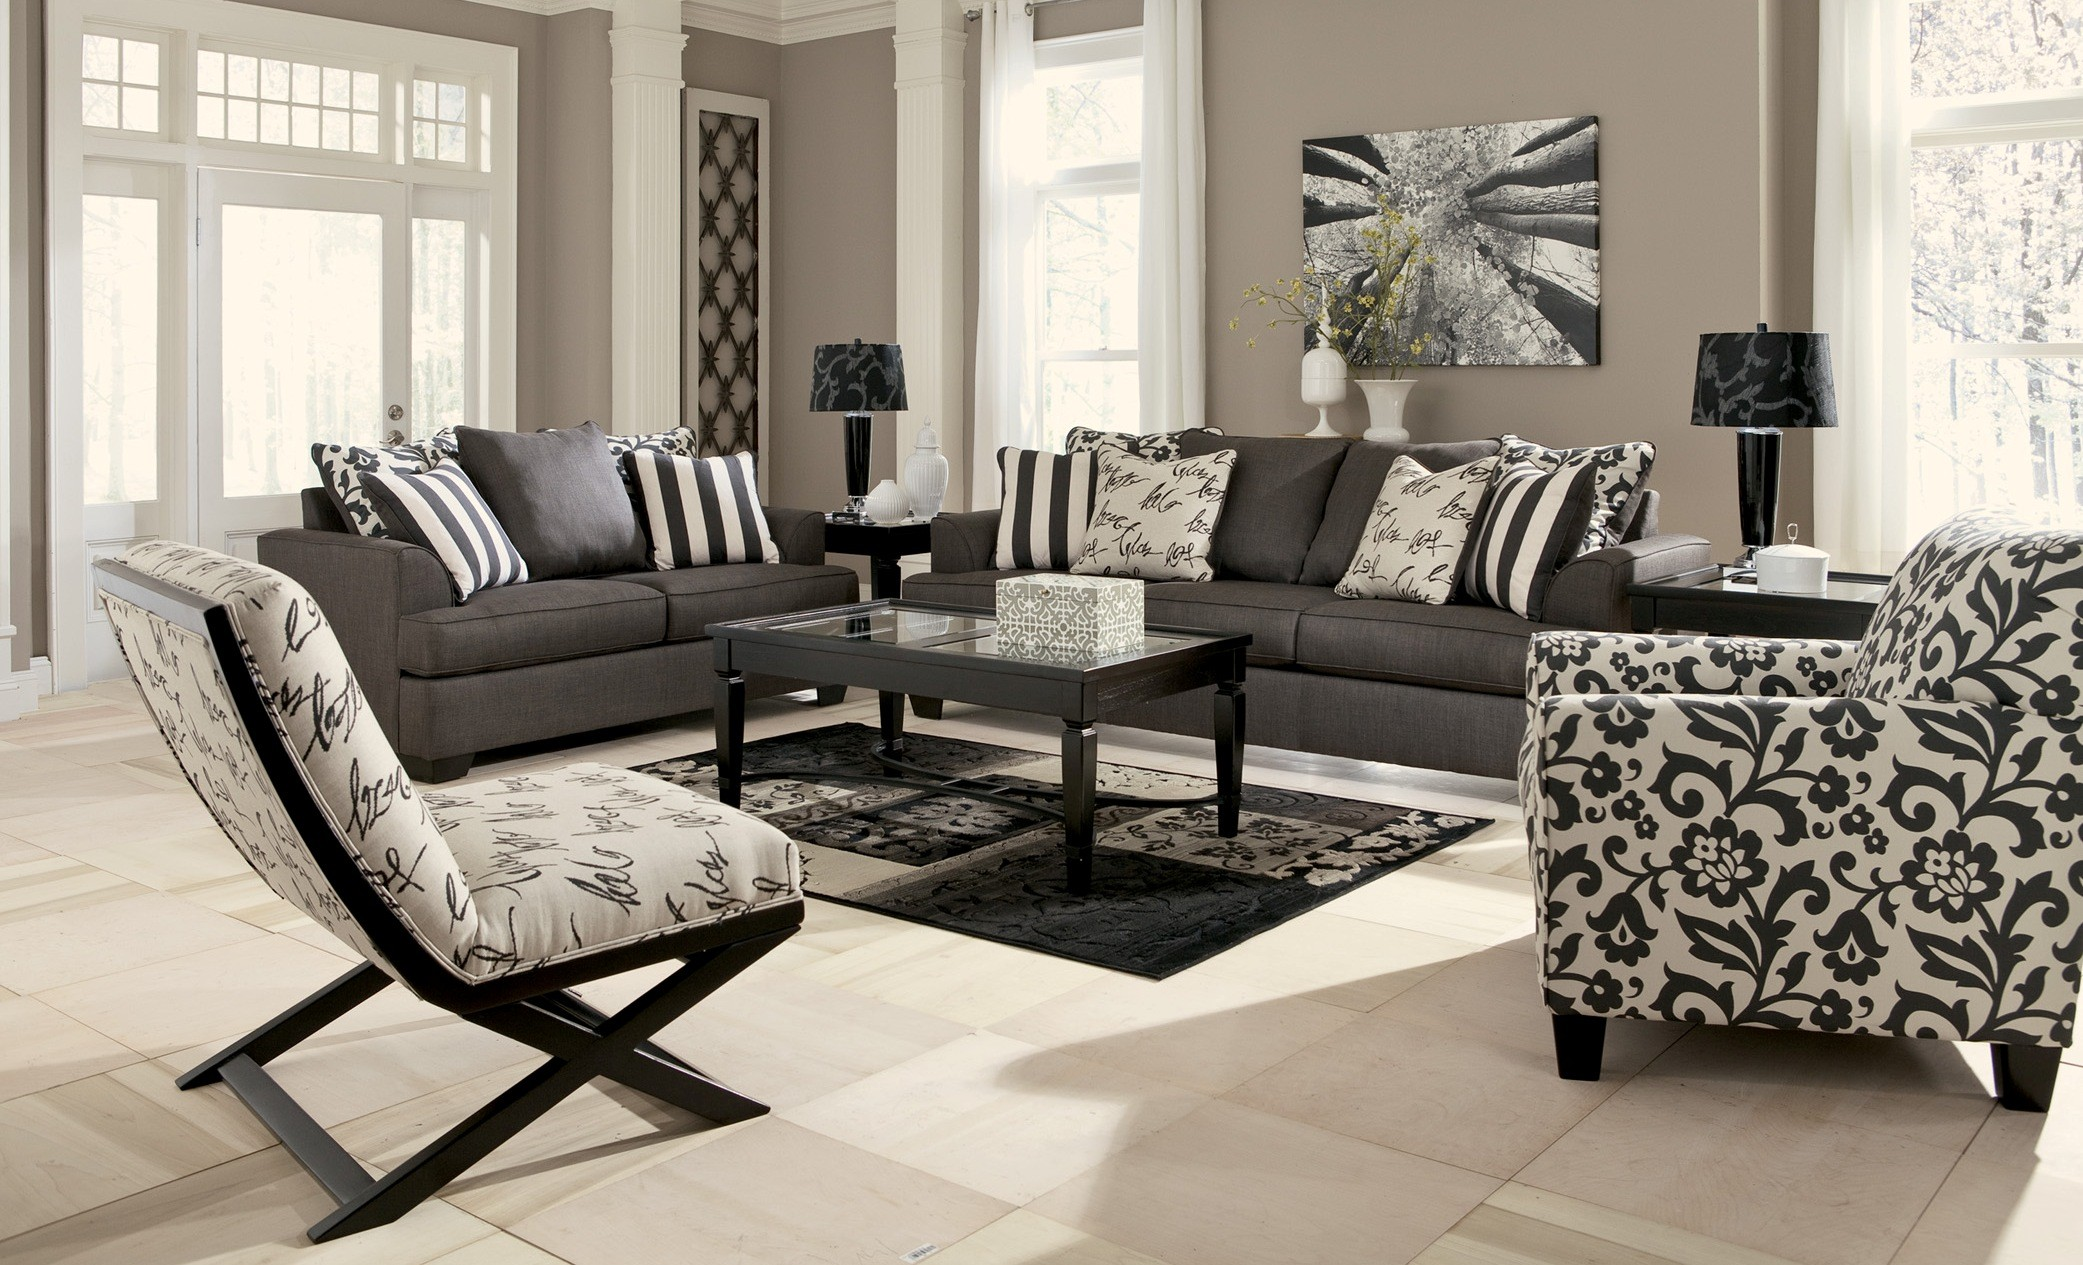 Ashley Living Room Furniture. 336095 Ashley Living Room Furniture N